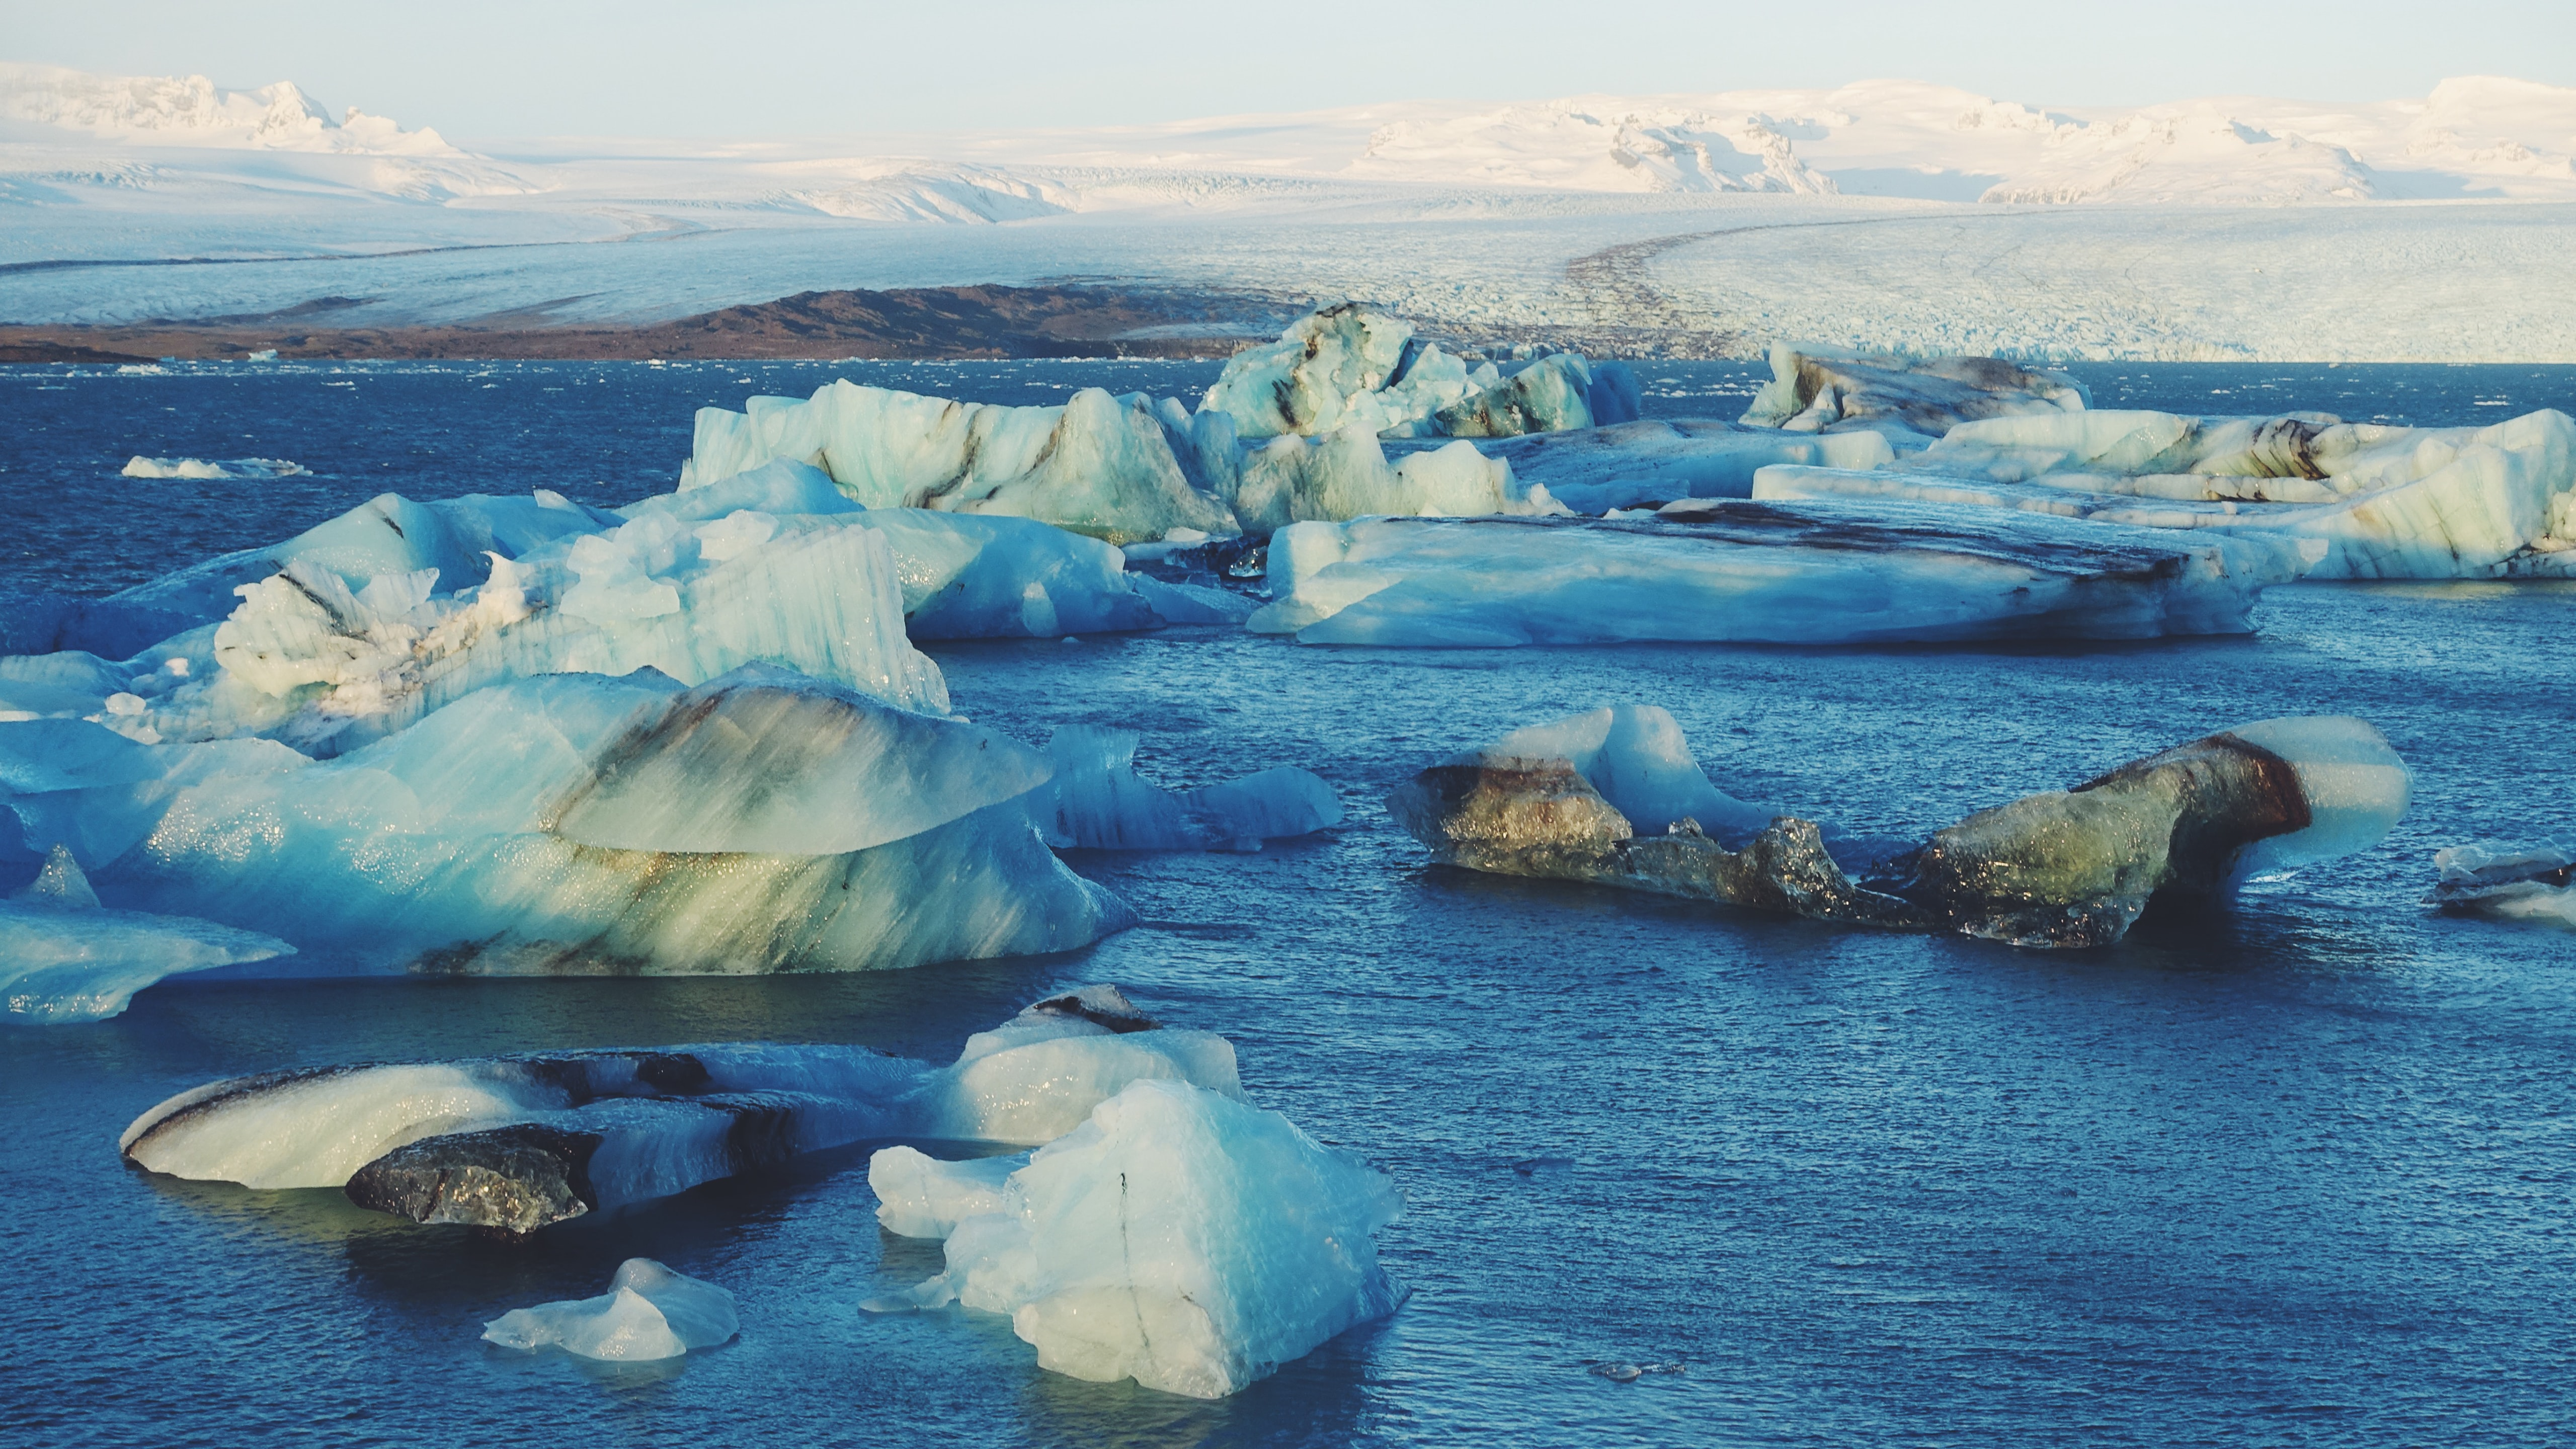 Arctic glaciers in water with snow covered mountains in the distance